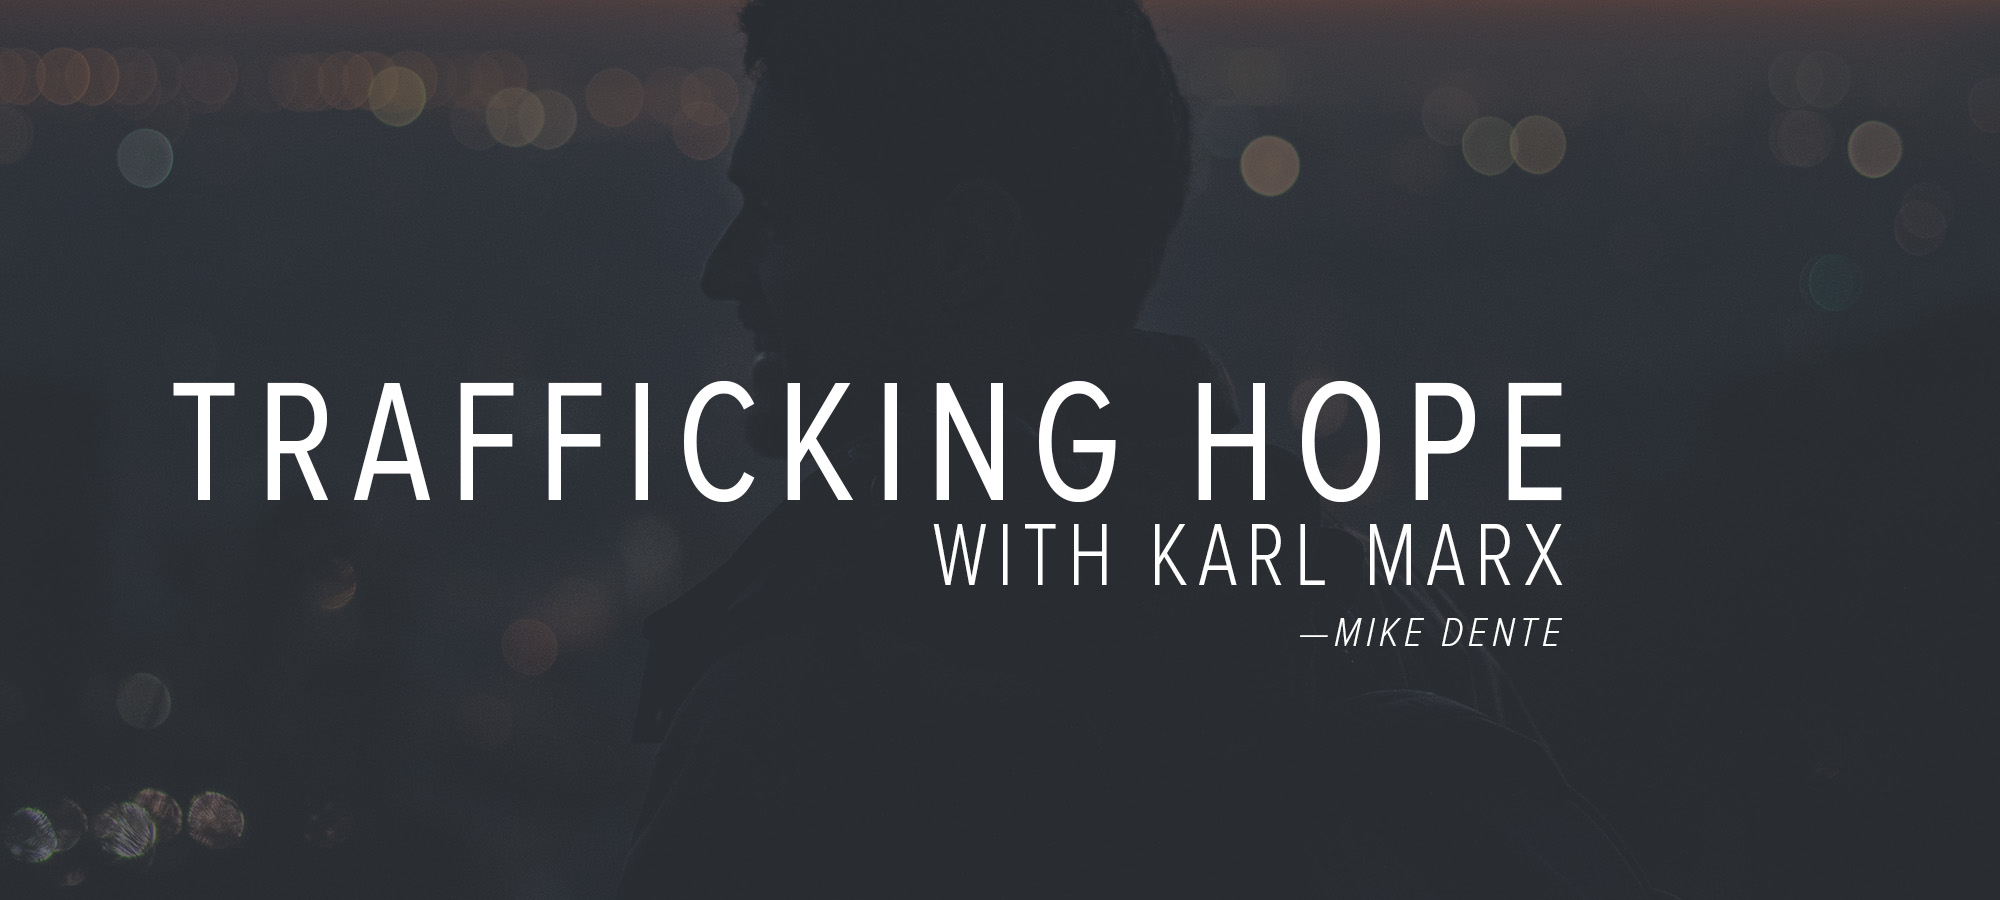 Trafficking Hope with Karl Marx